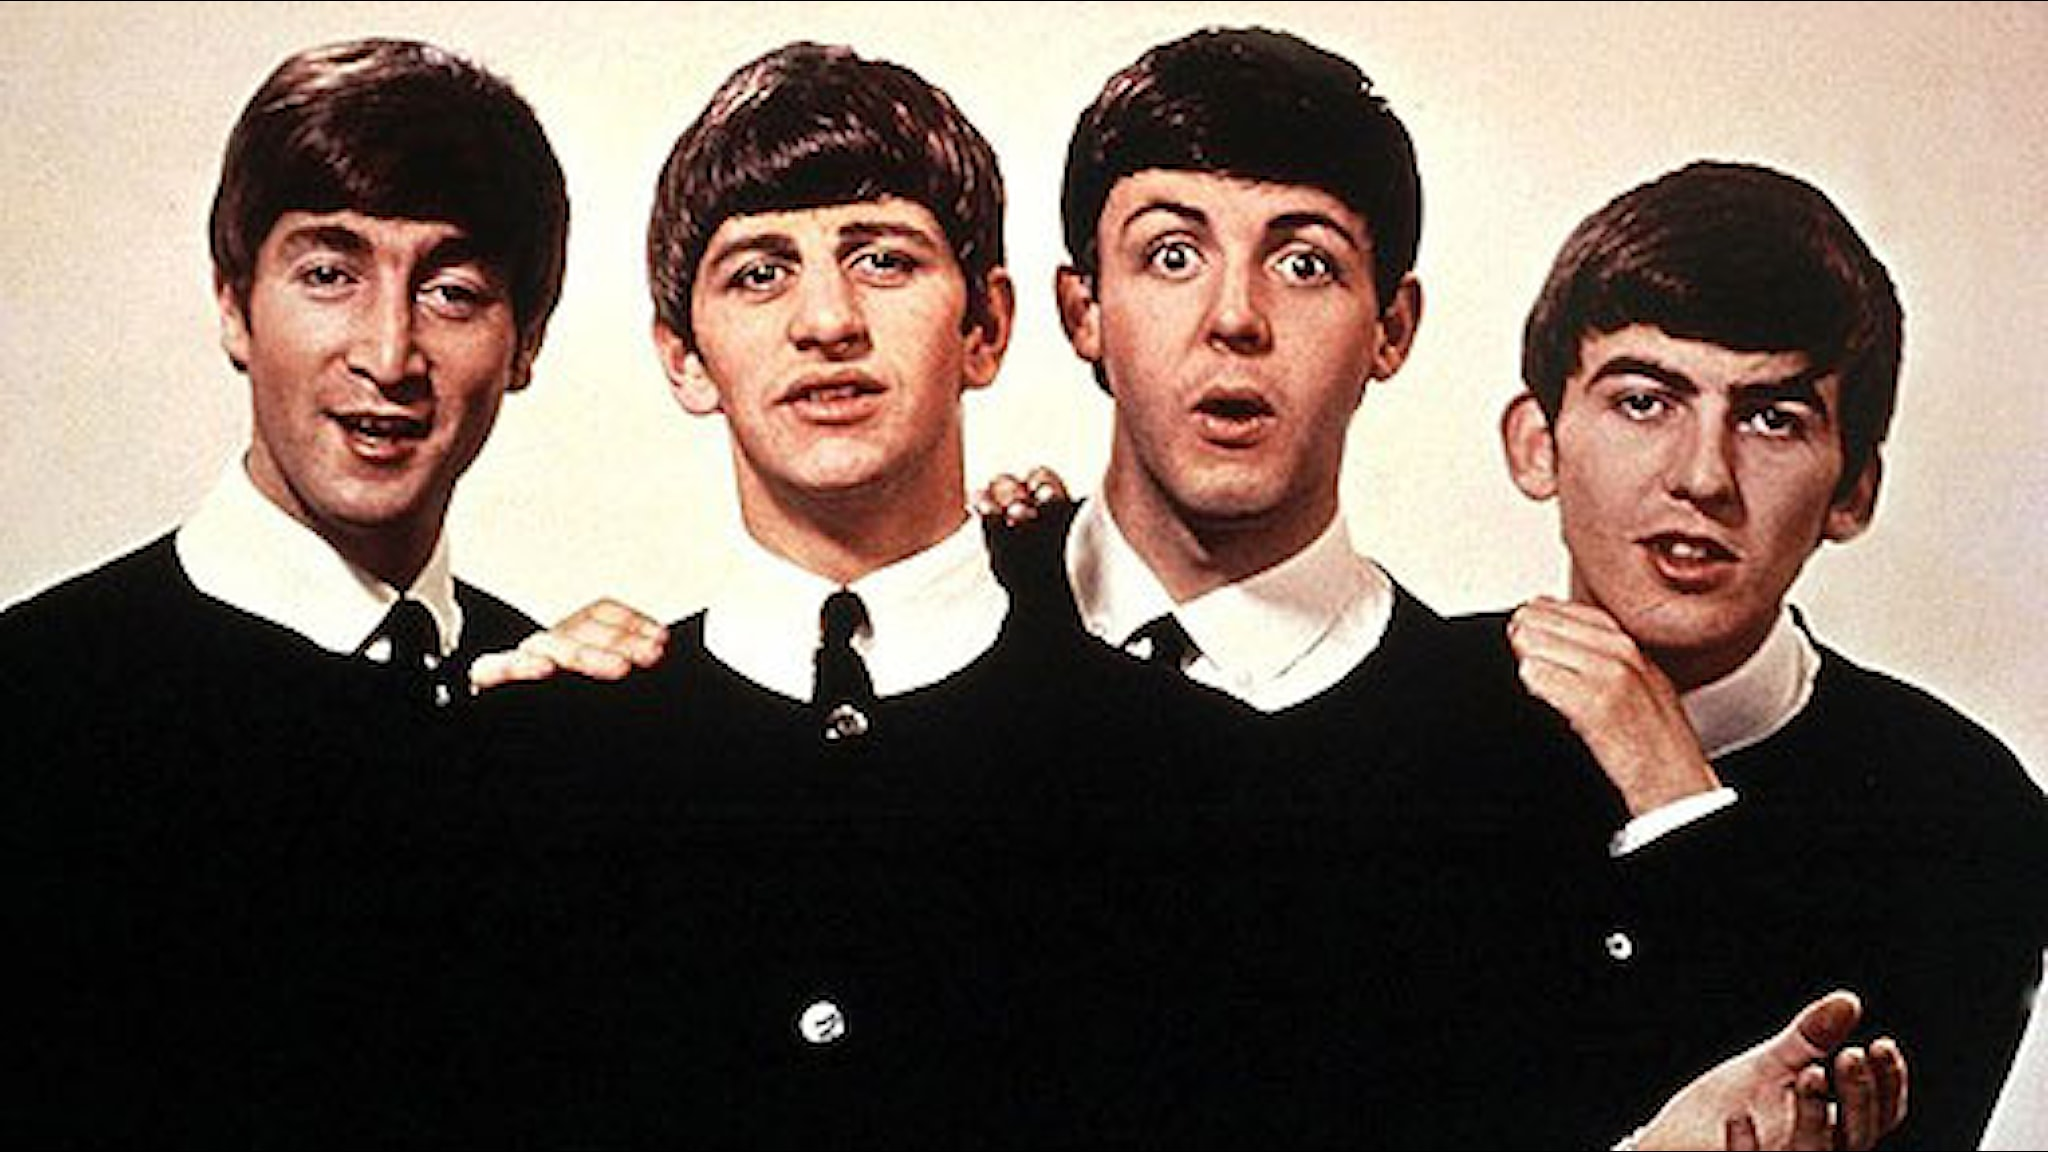 The Beatles 1963. Gruppmedlemmarna (fr.v.) John Lennon, Ringo Starr, Paul McCartney och George Harrisson. Foto: Scanpix